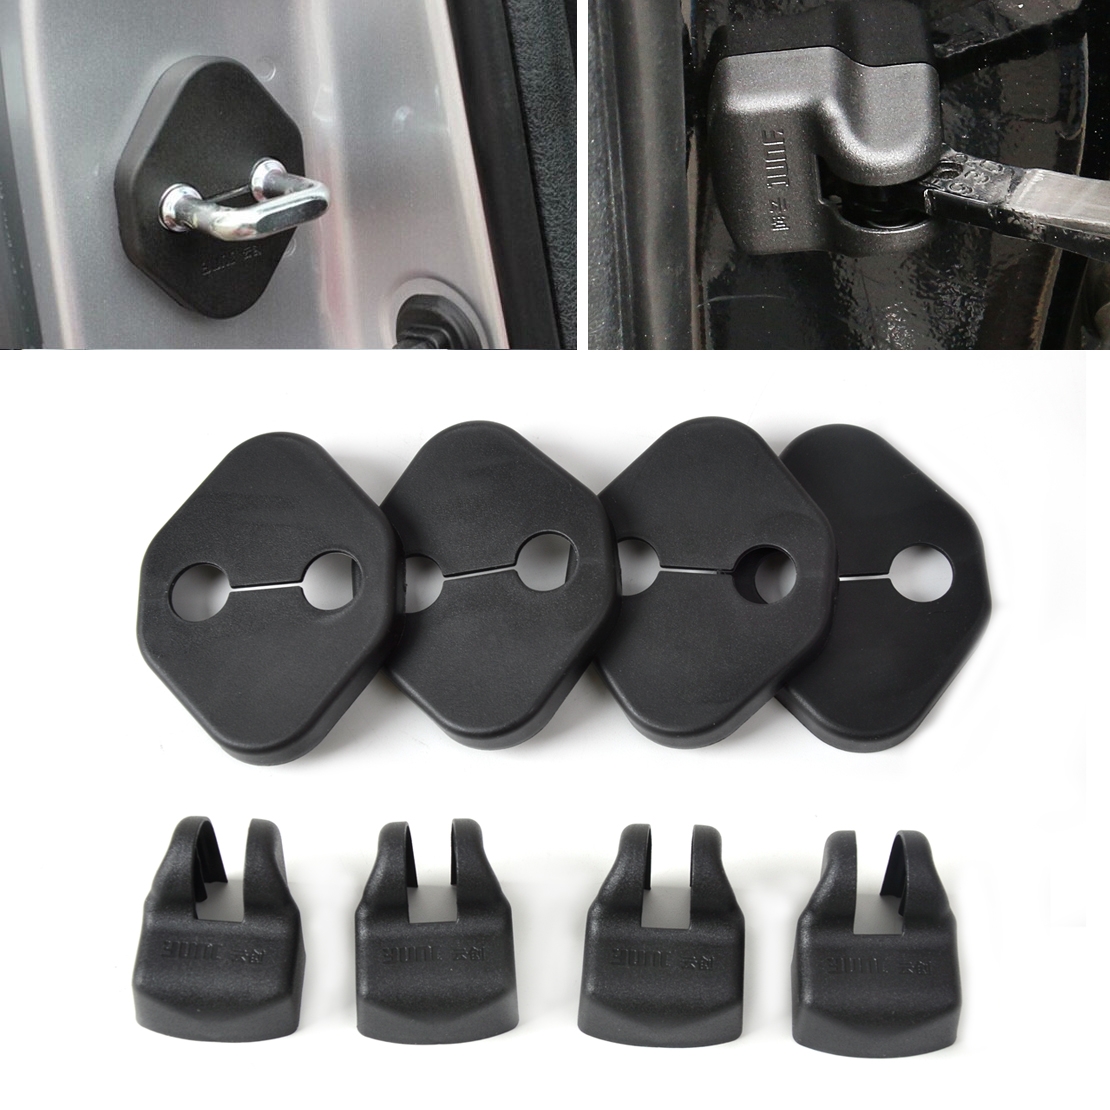 CITALL Car Door Striker Cover Lock Protector Stopper Buckle Case Cap Check Arm Cover For Toyota Camry Corolla 2011